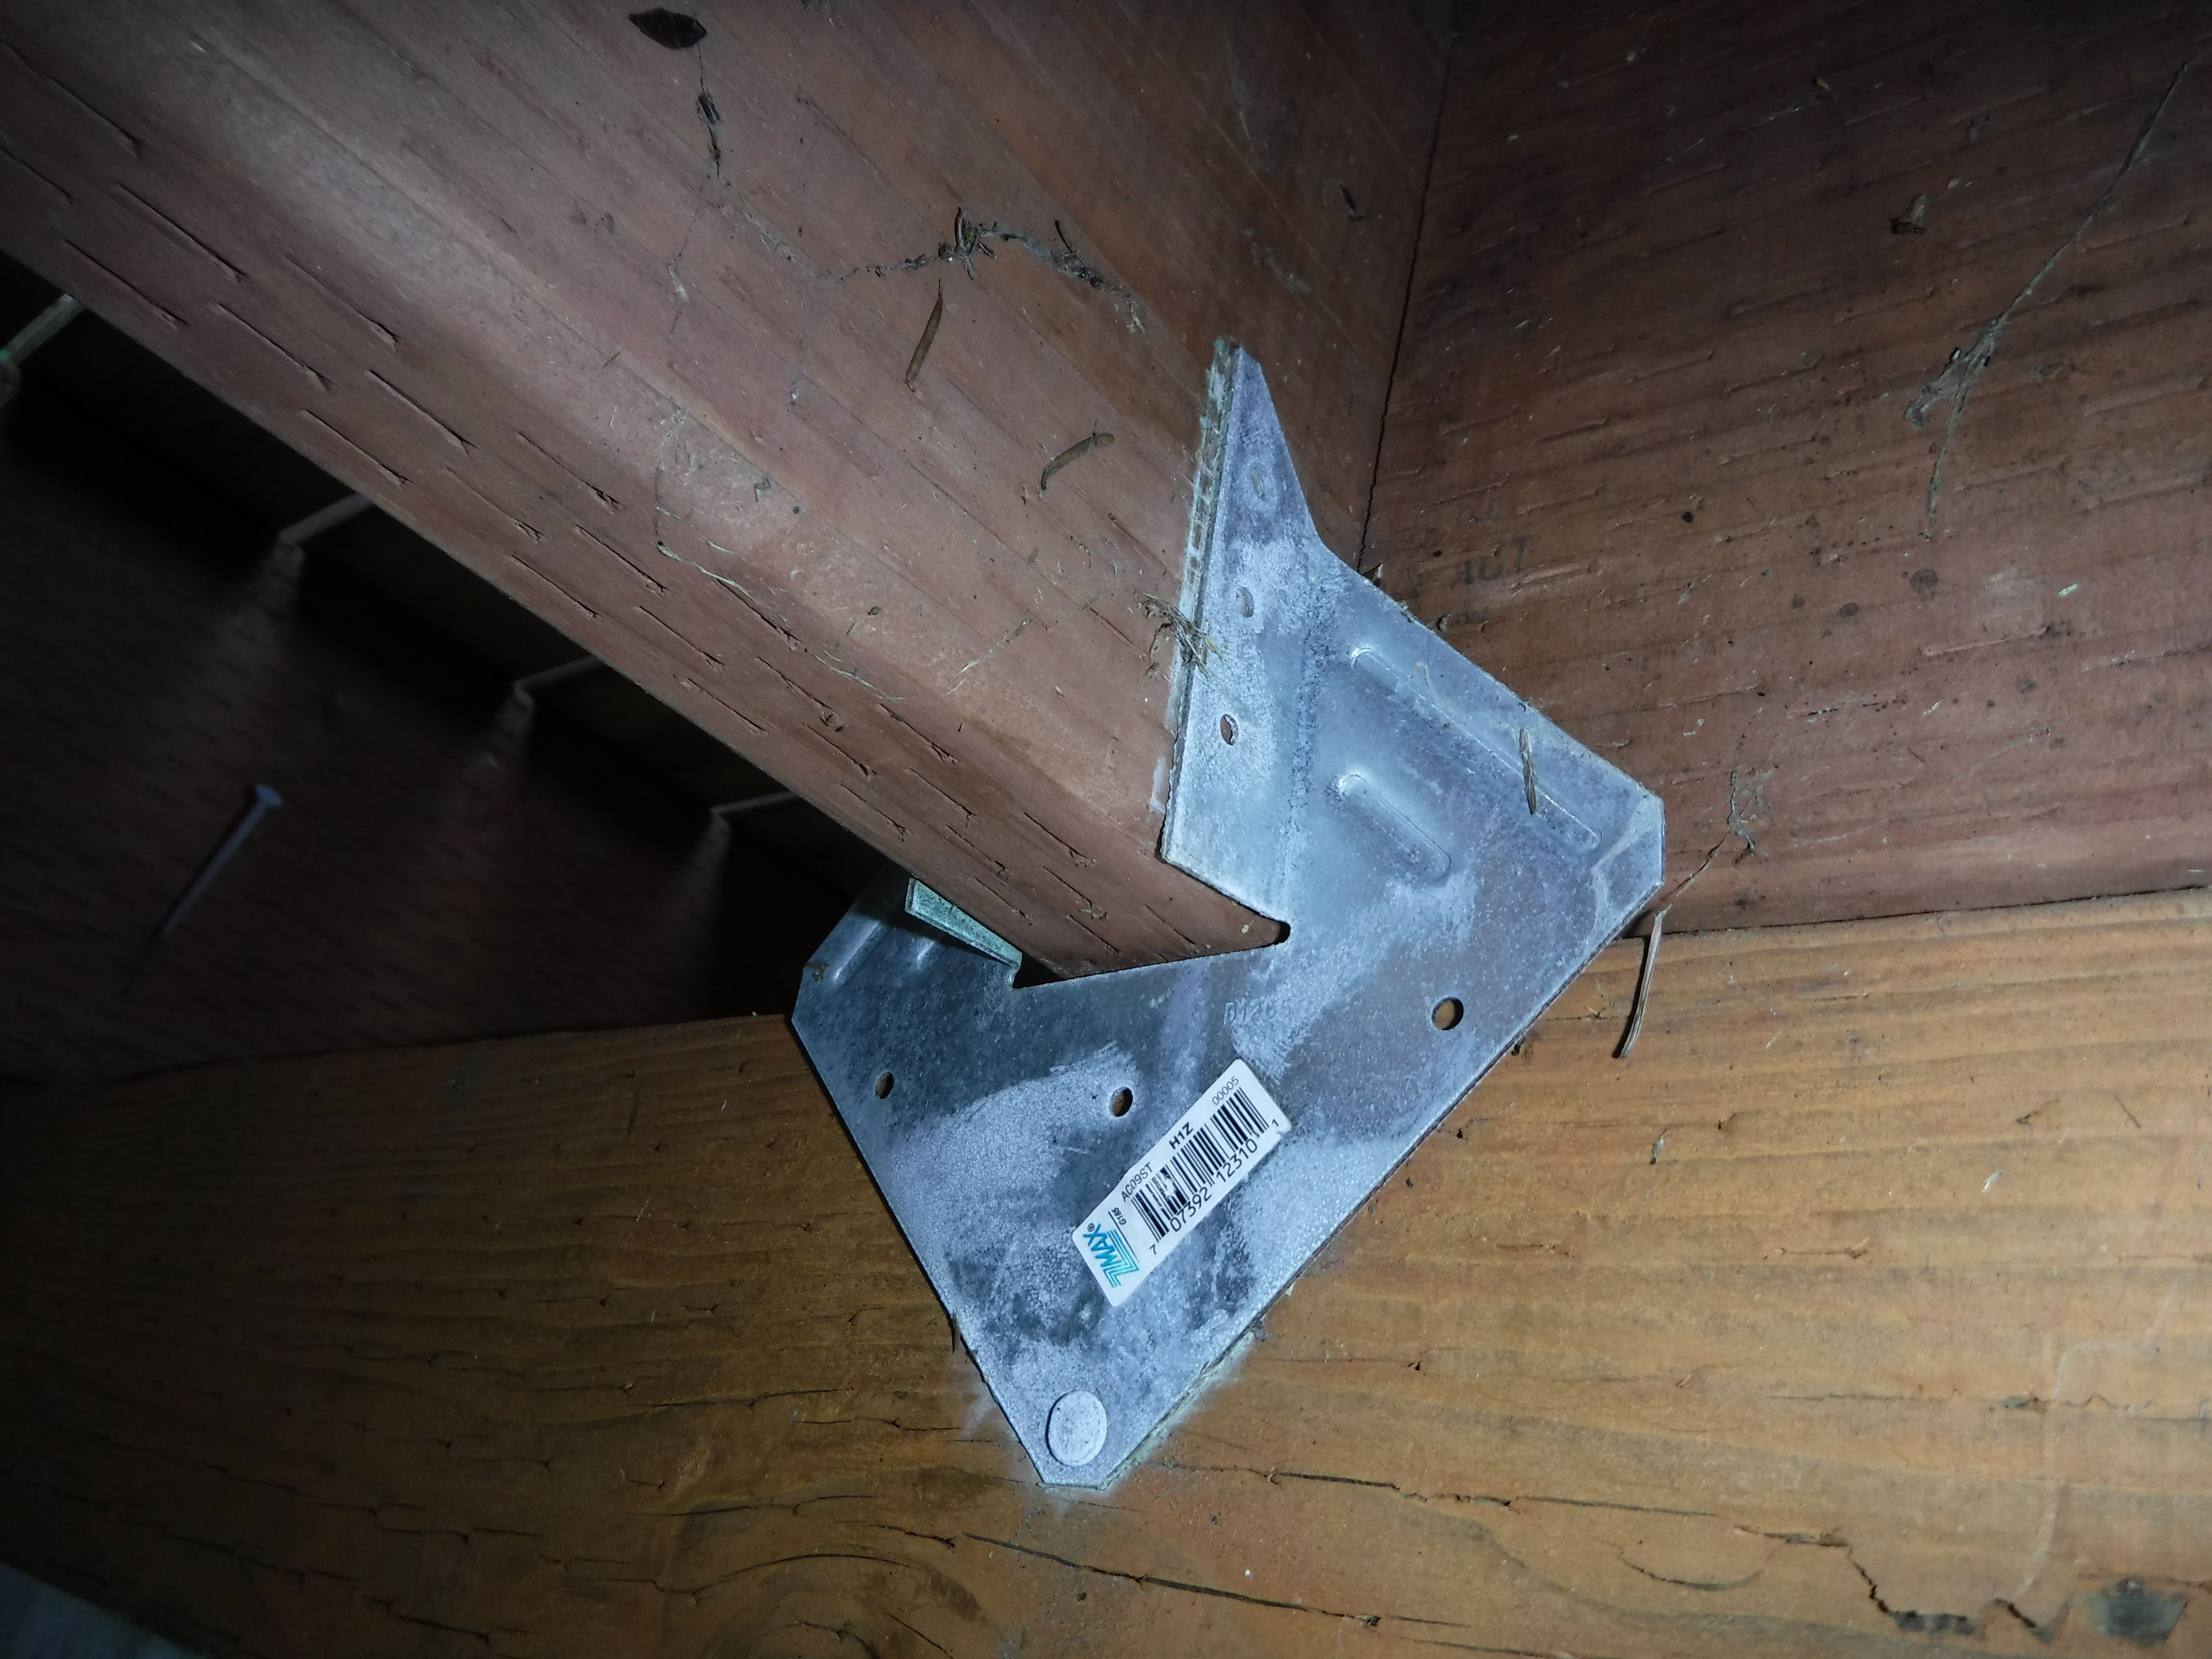 Safety All Islands Home Inspections Page 2 To Identify Zinsco Gte Sylvaniazinsco Electrical Panels Circuit Its Too Common Find Metal Deck Joist Hardware That Isnt Fully Fastened Or Nailed How Much Extra Effort Does It Take Pound In A Few More Nails